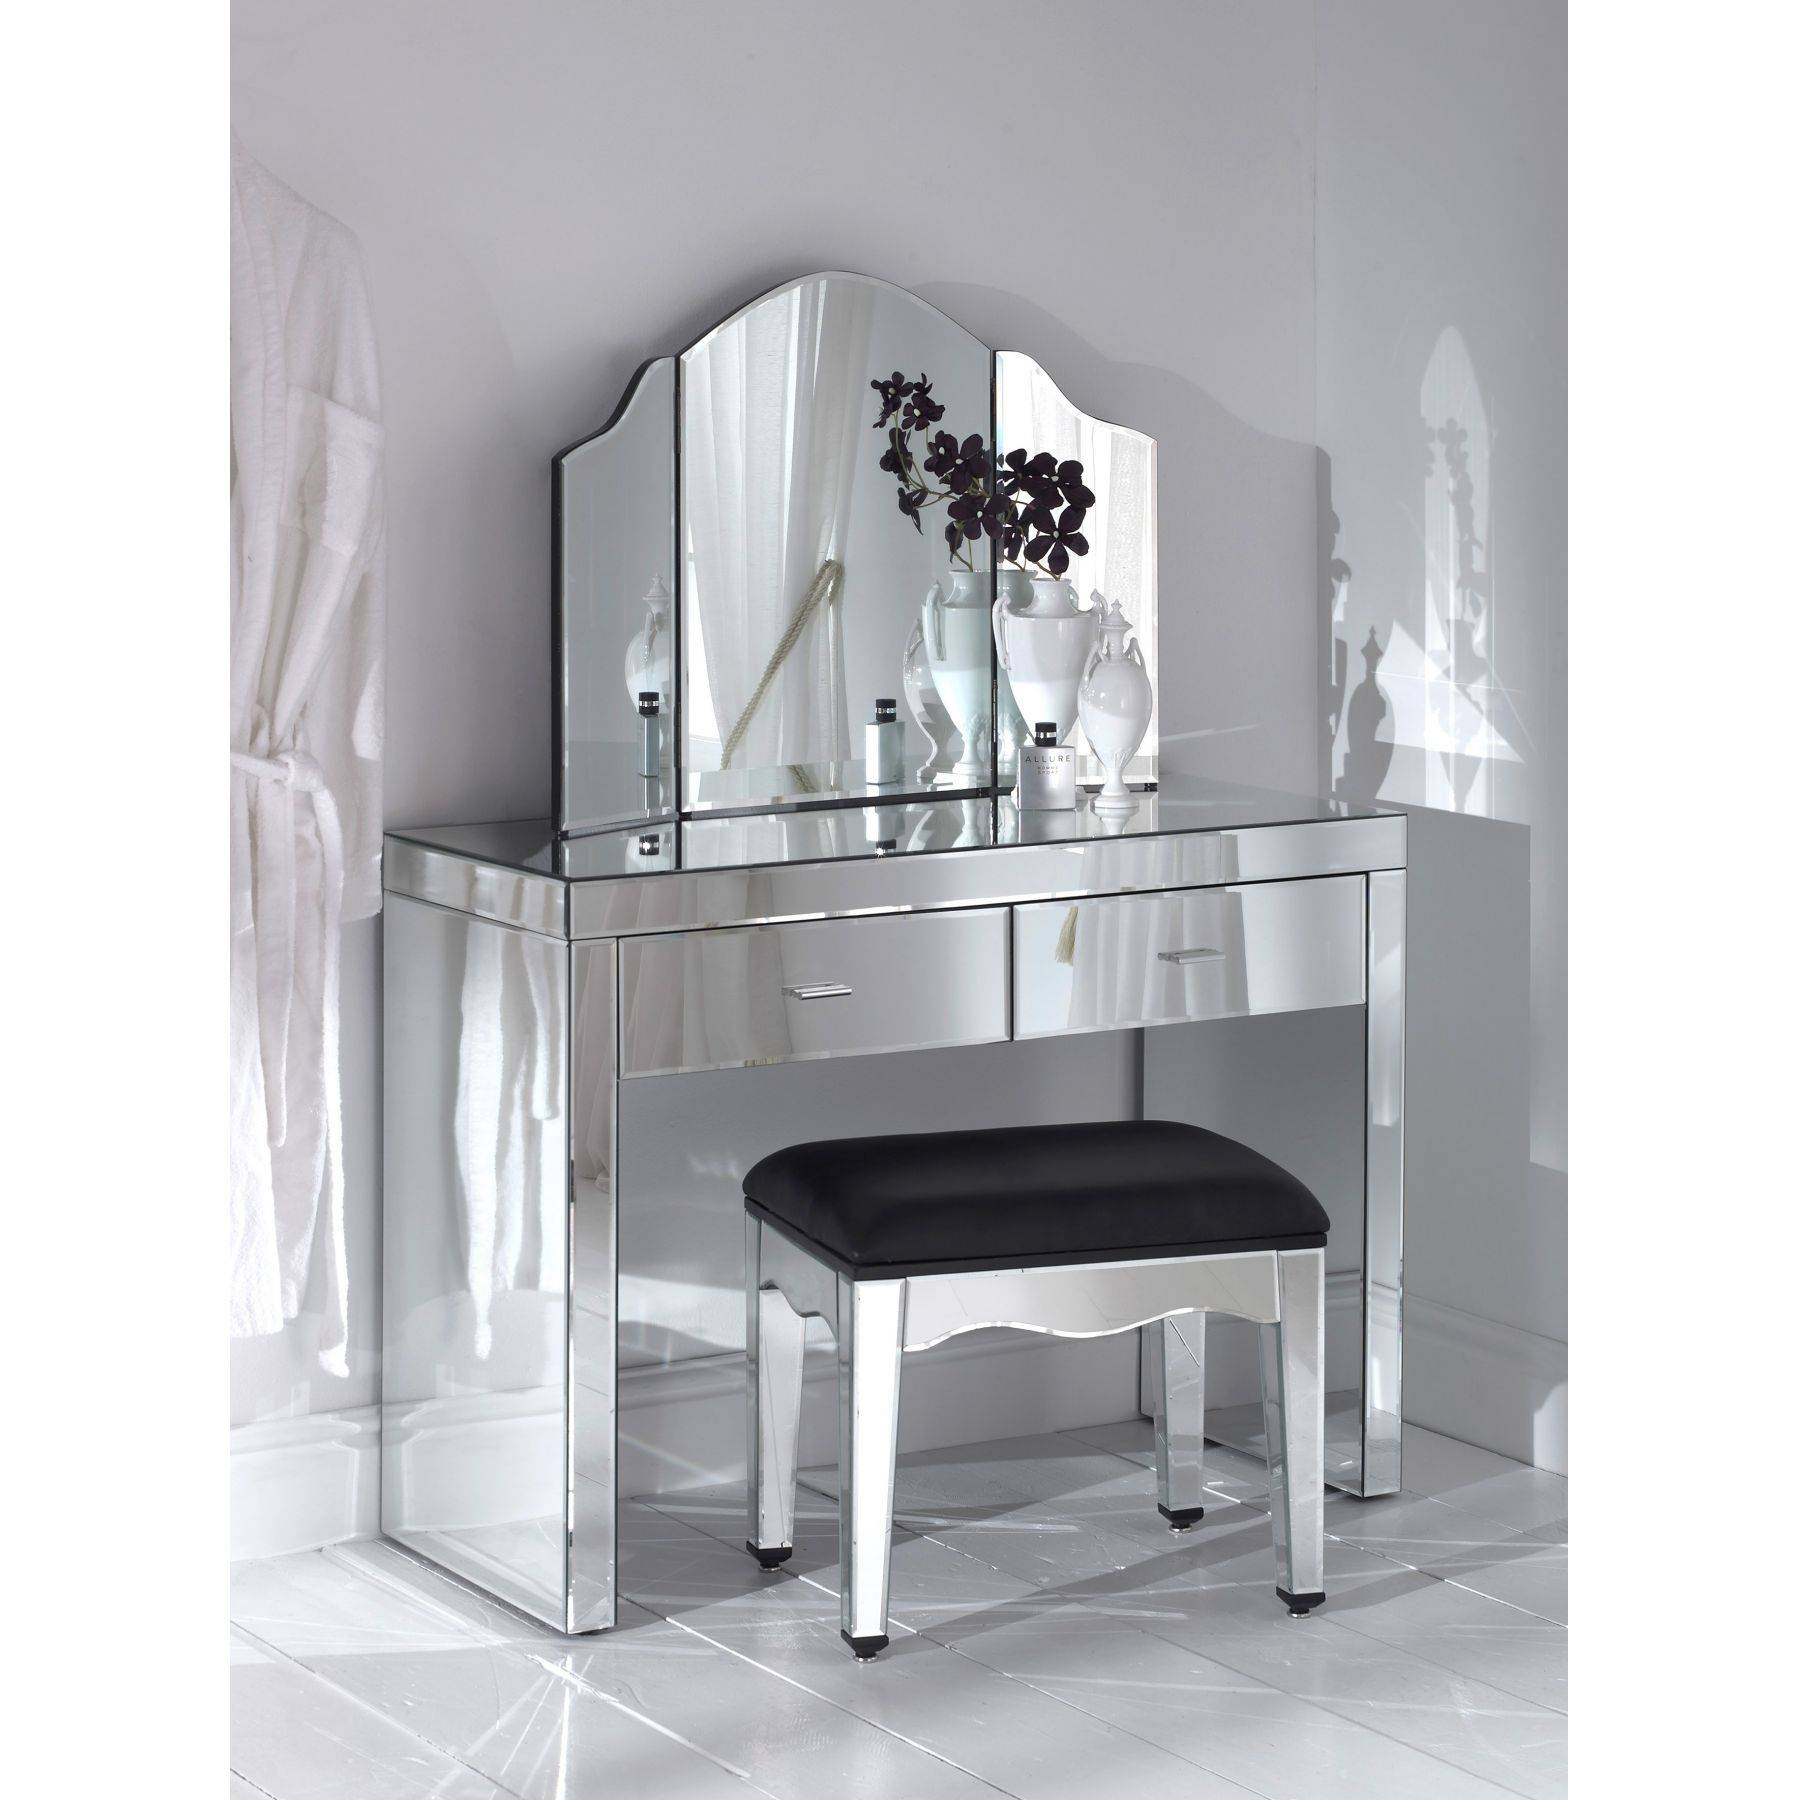 Three Mirror Set. 3 Mirror Medicine Cabinet Set Seamlessly With for Modern Silver Mirrors (Image 22 of 25)